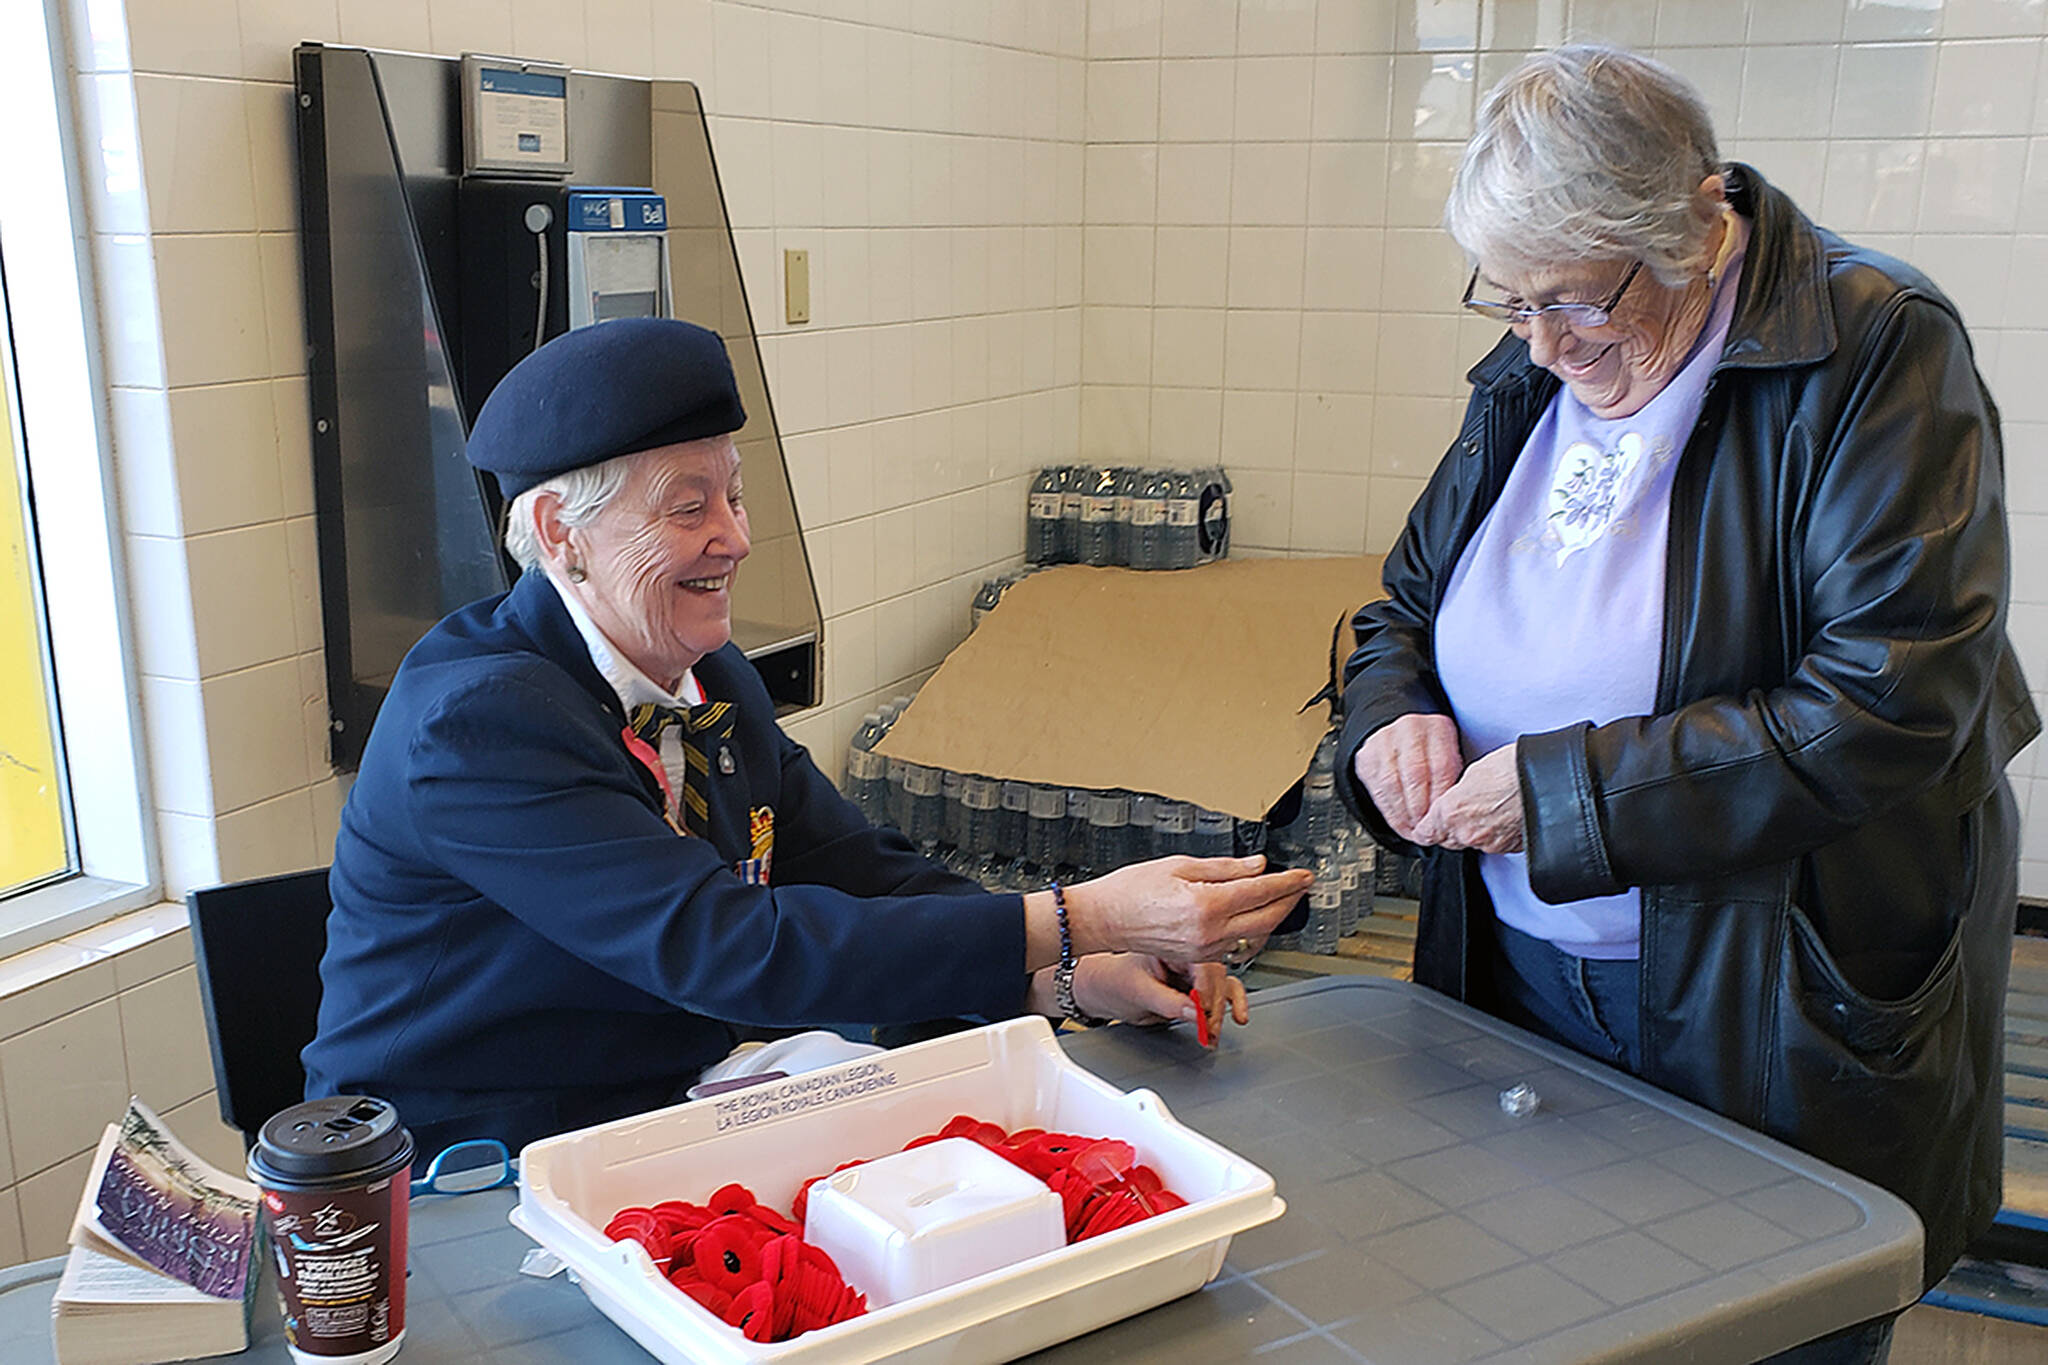 Poppy Drive: Royal Canadian Legion member Marlene Ferguson helps Peggy Lucas with her poppy at the No Frills grocery story in Ponoka Oct. 25, the first day of the annual poppy campaign. Legion members will be at local stores and other venues until Nov. 10 selling poppies. Photo by Jordie Dwyer